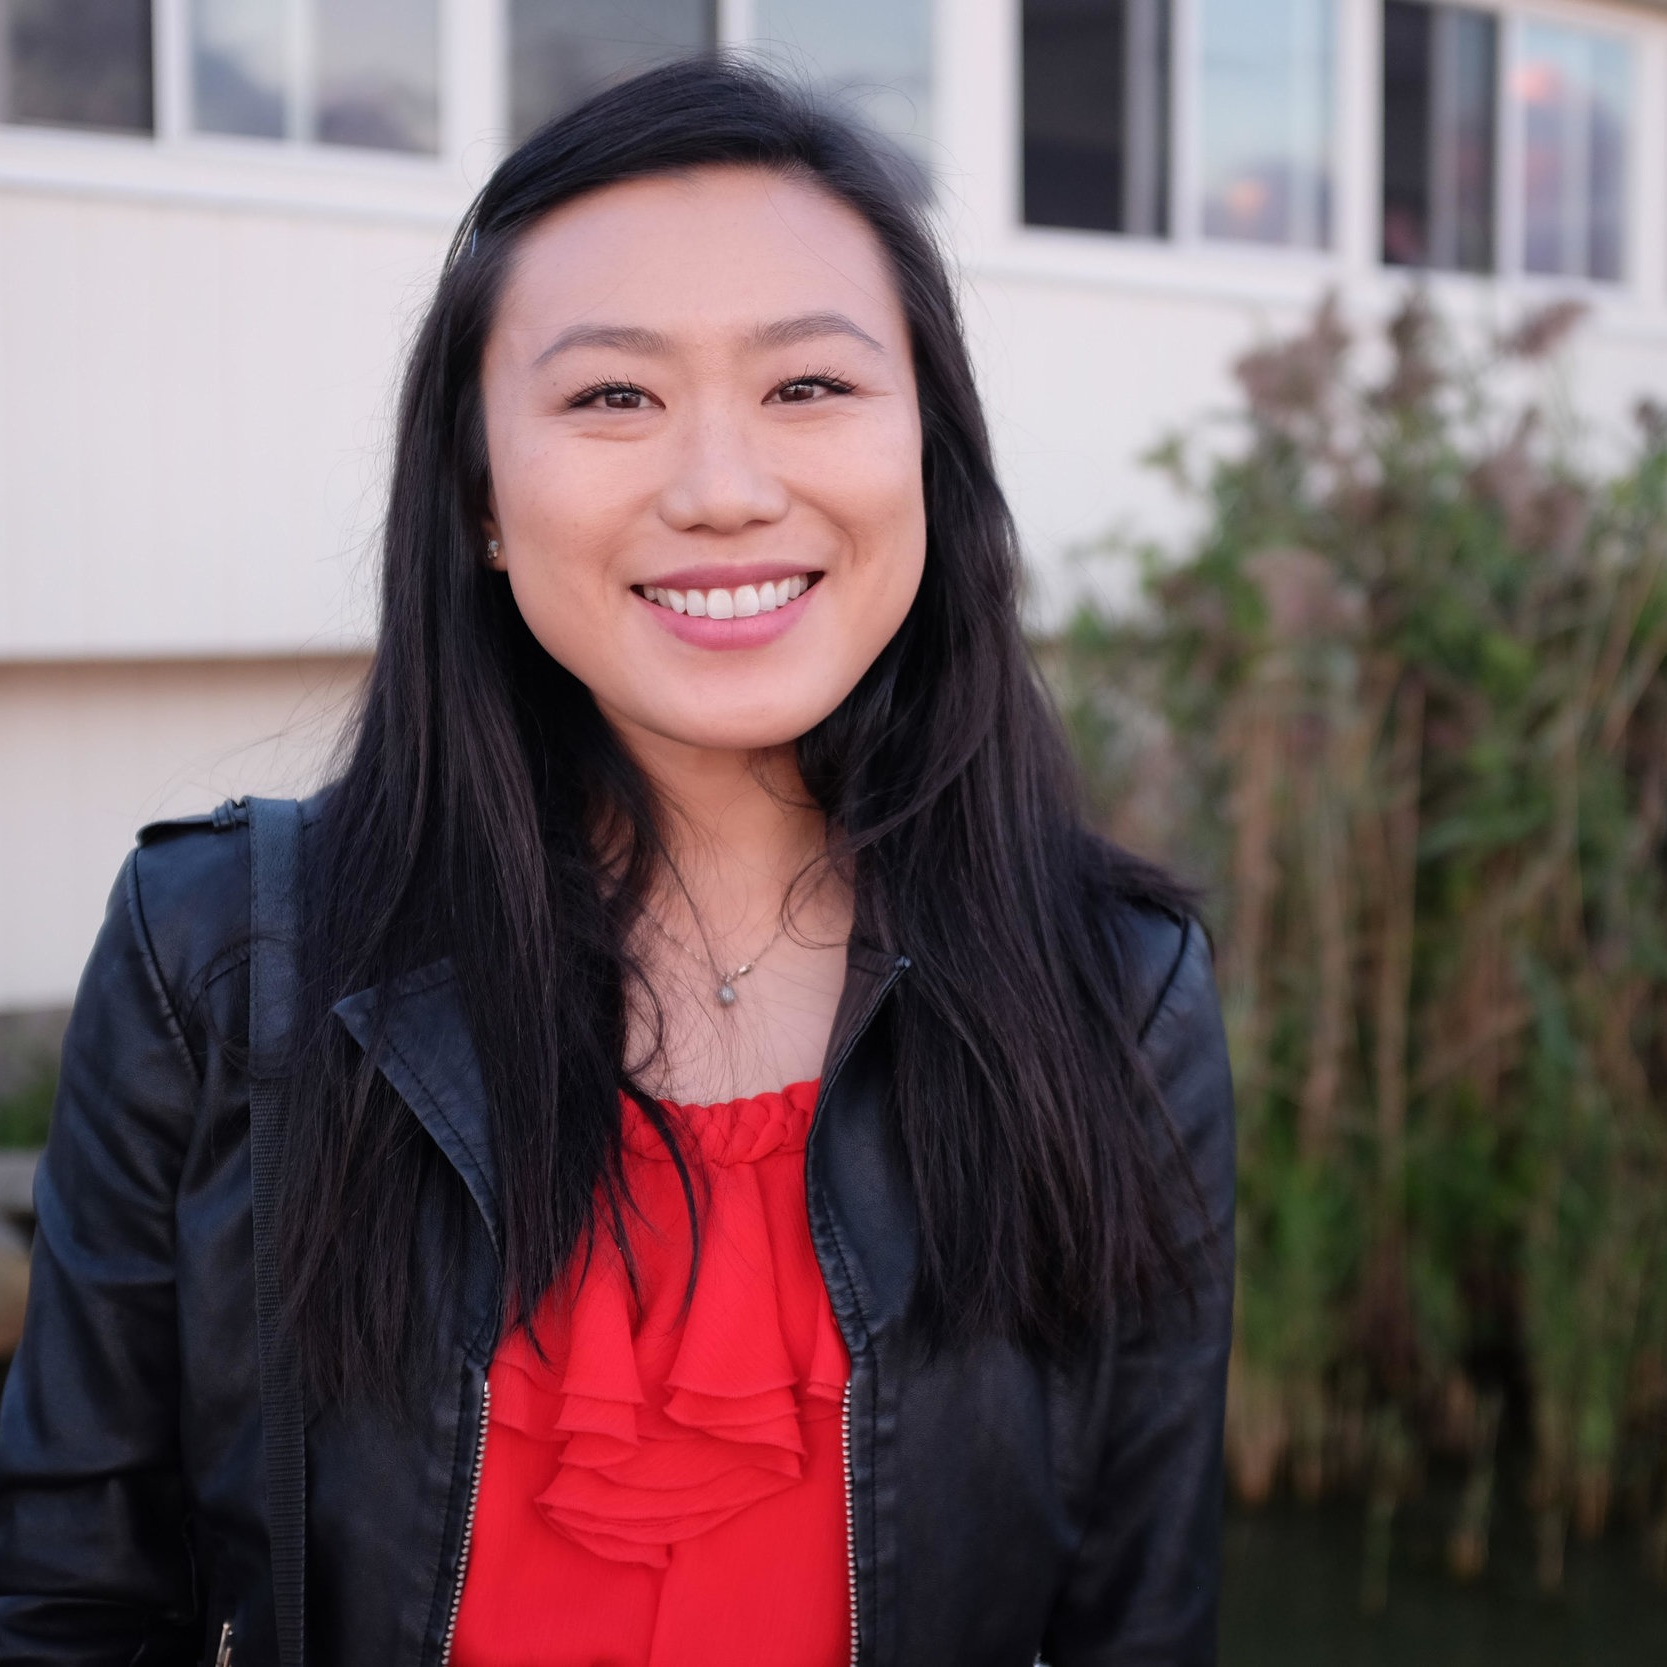 Joanne Chiu - Battery CoachJoanne Chiu has been with California HS since 2011 and works with the marching percussion section. Joanne is on the Northern California Percussion Alliance Board of Directors, starting in 2016 serving as the Events Director, and will continue on the NCPA Board for 2019/2020 as Treasurer. Joanne is from southern California and marched at Ayala HS, Esperanza, RCC, and at UCLA. In addition to dedicating time to teaching music, Joanne works as a habitat conservation planner with Contra Costa County.